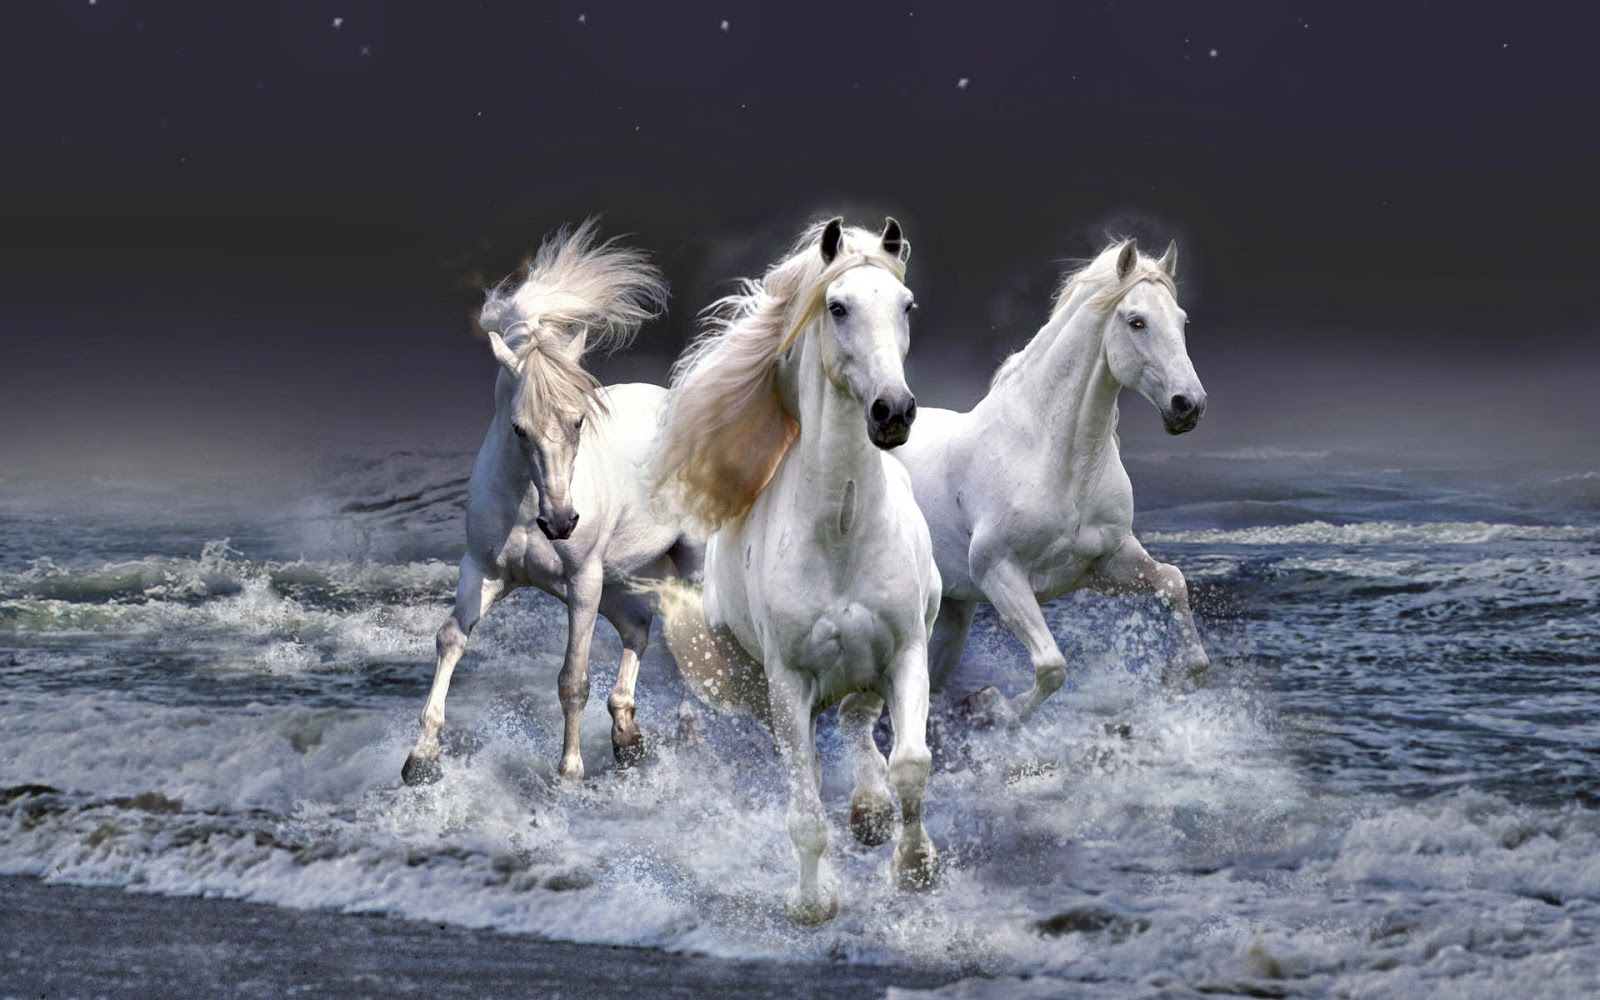 Windows 8 hd wallpapers horses hd wallpapers horses hd wallpapers altavistaventures Image collections